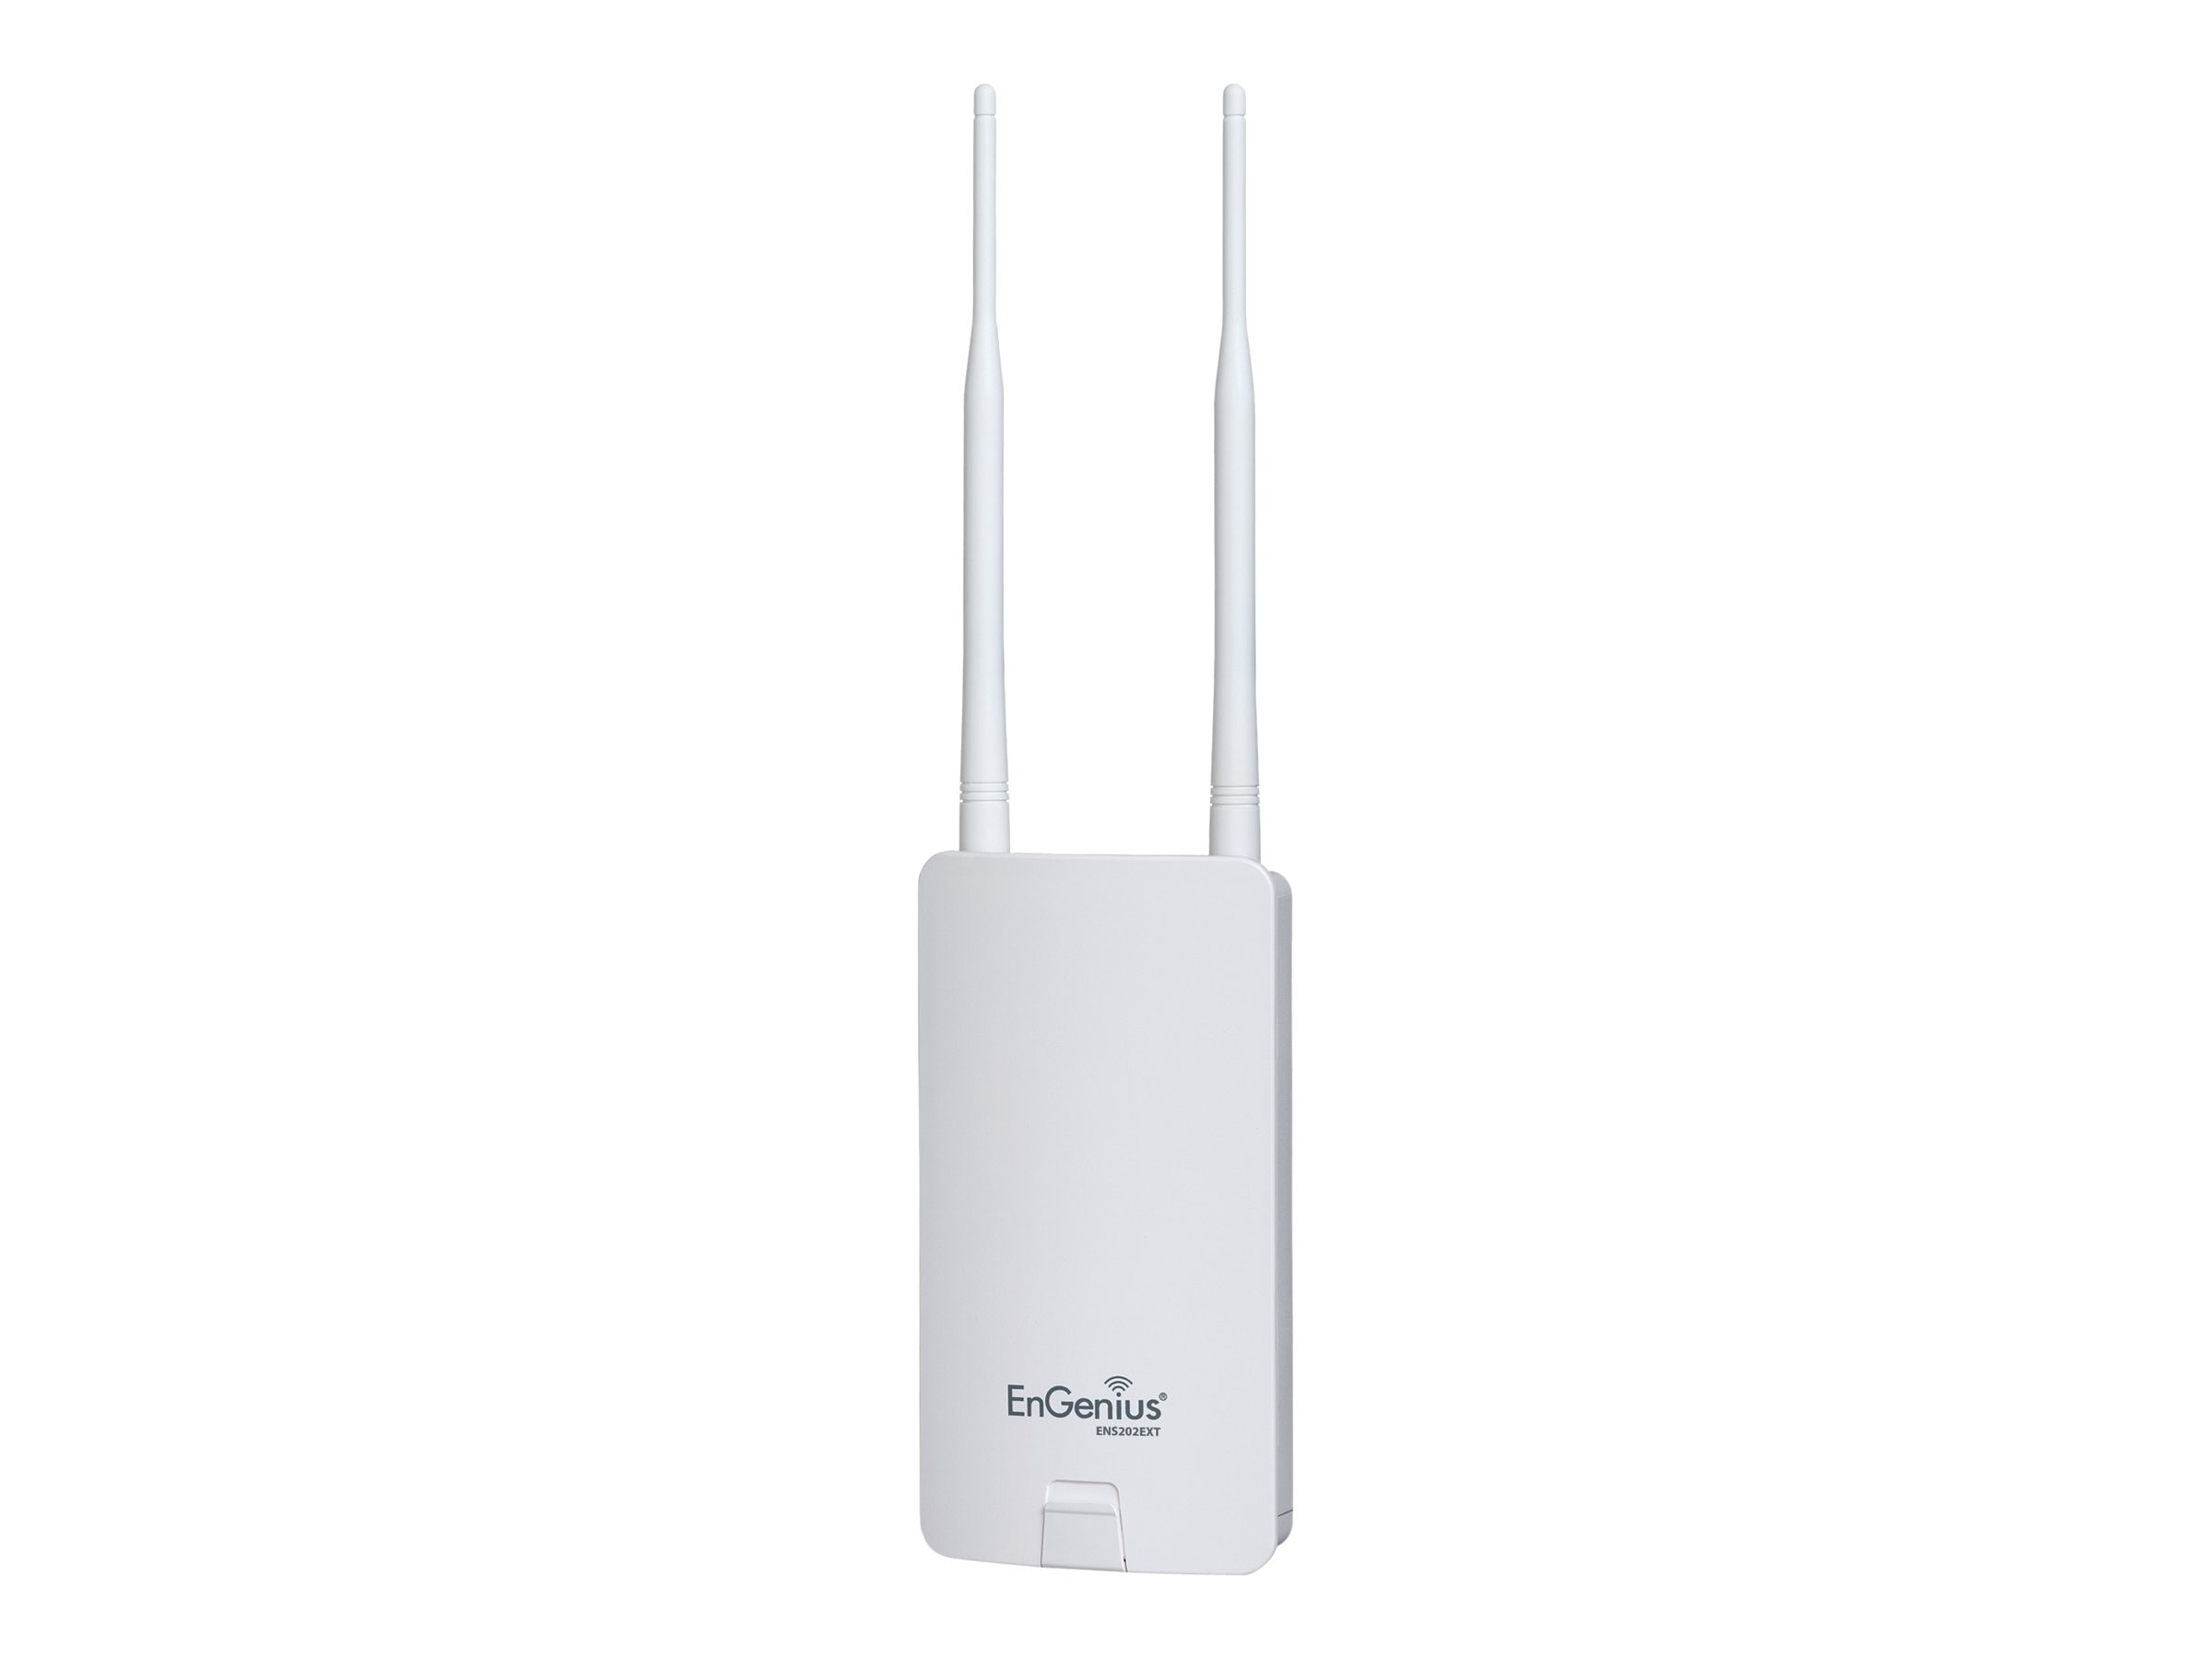 Engenius Technologies 2.4GHZ High-powered, long-range Wireless N300 Outdoor Access Point, ENS202EXT, 15462646, Wireless Access Points & Bridges